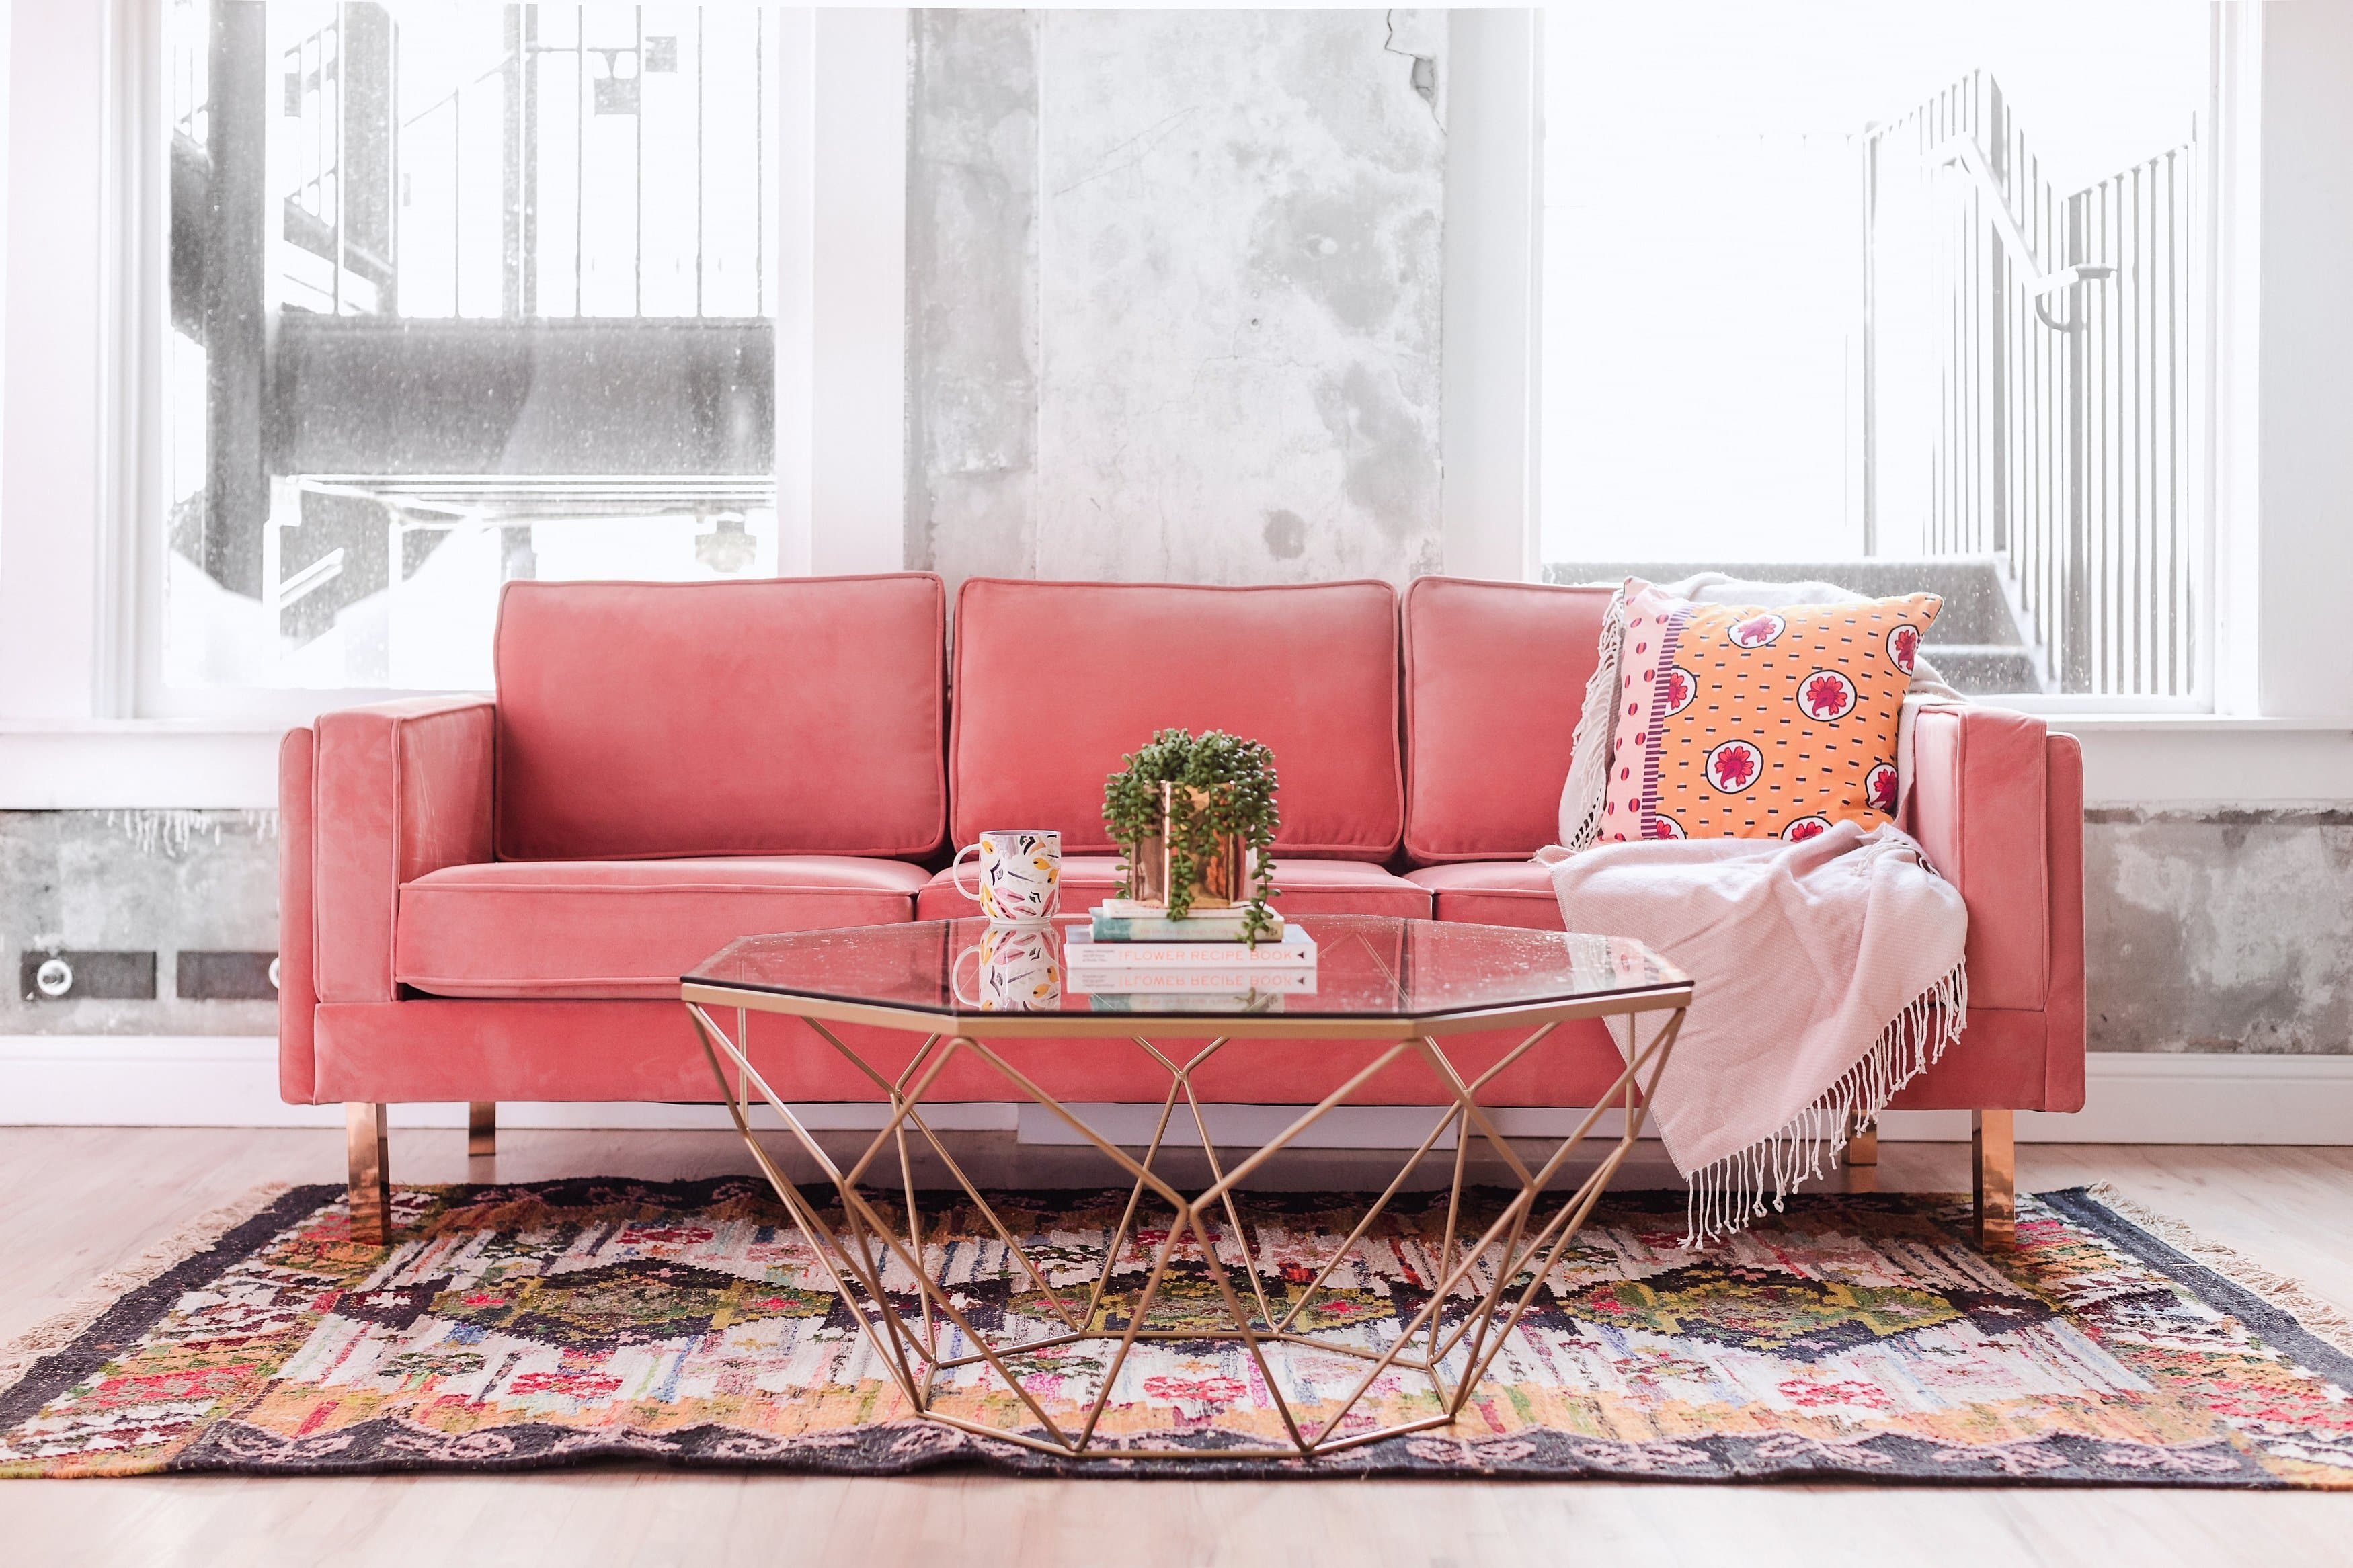 Lexington Midcentury Modern Sofa Blush Pink Velvet Sofa